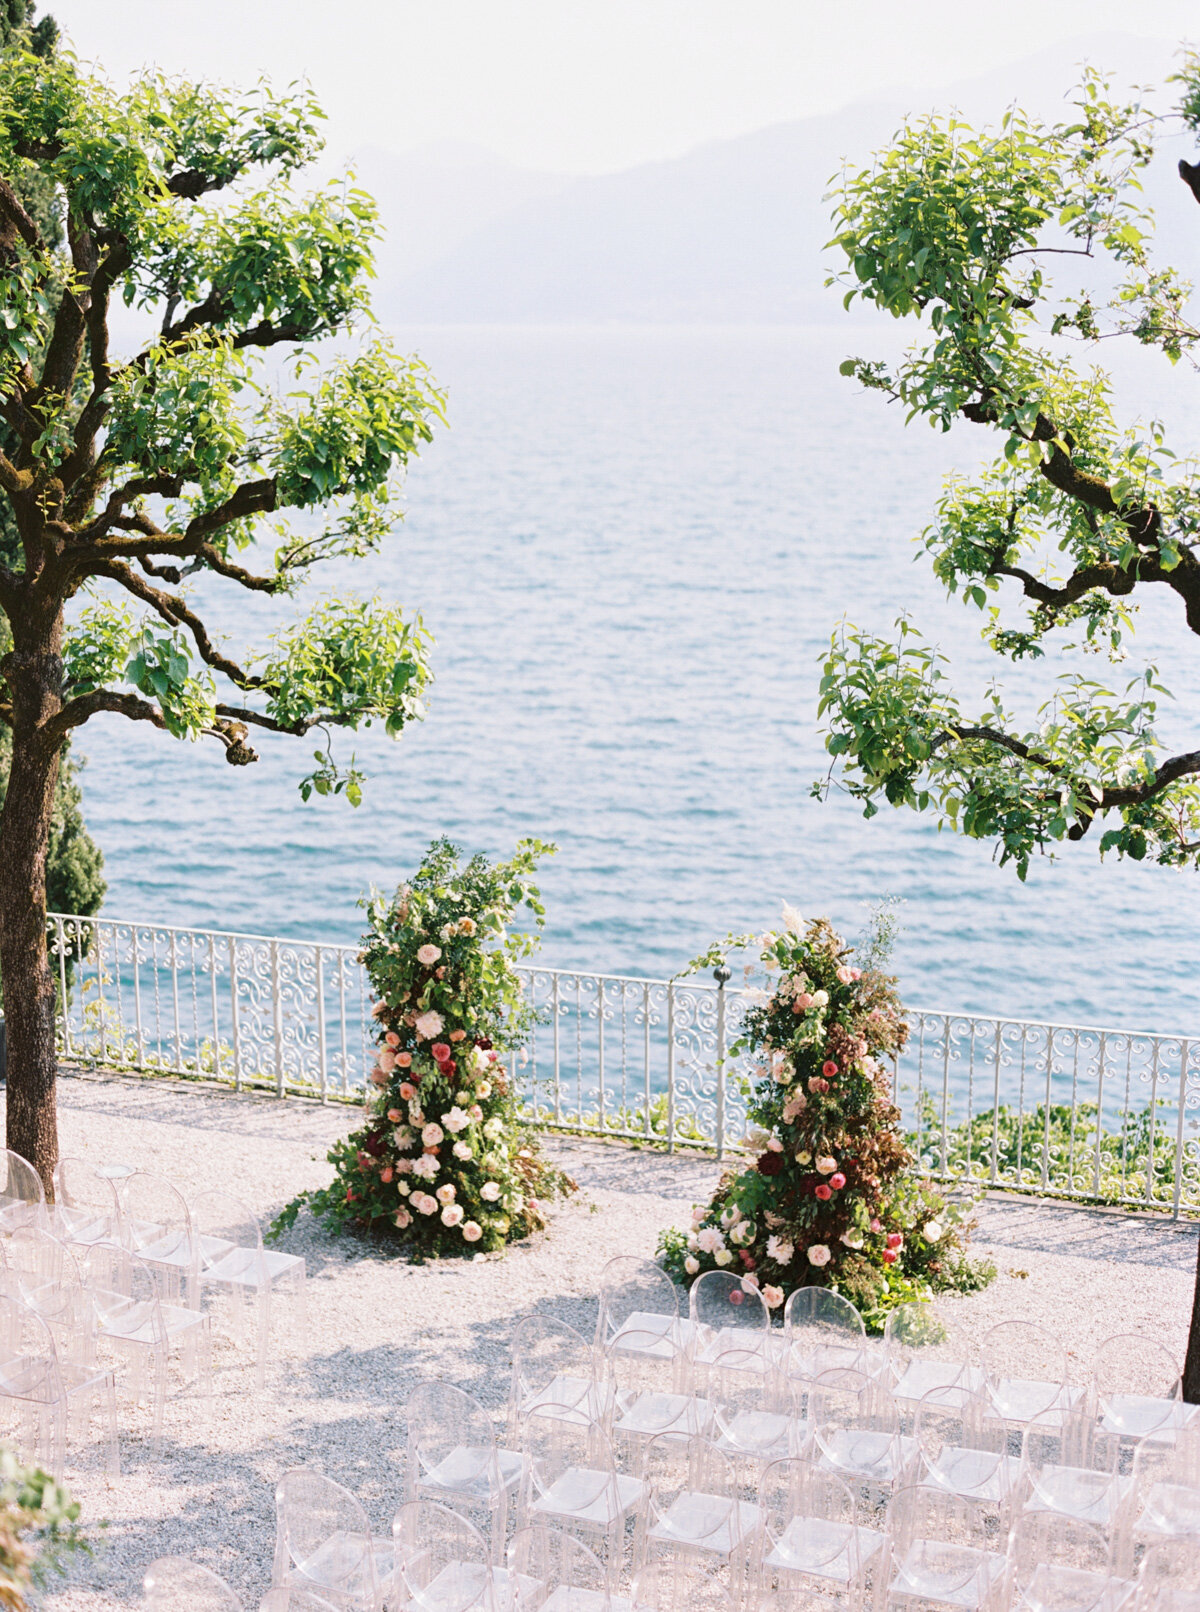 Lake-Como-Villa-Cipressi-Wedding-Katie-Grant-destination-wedding (44 of 93).jpg